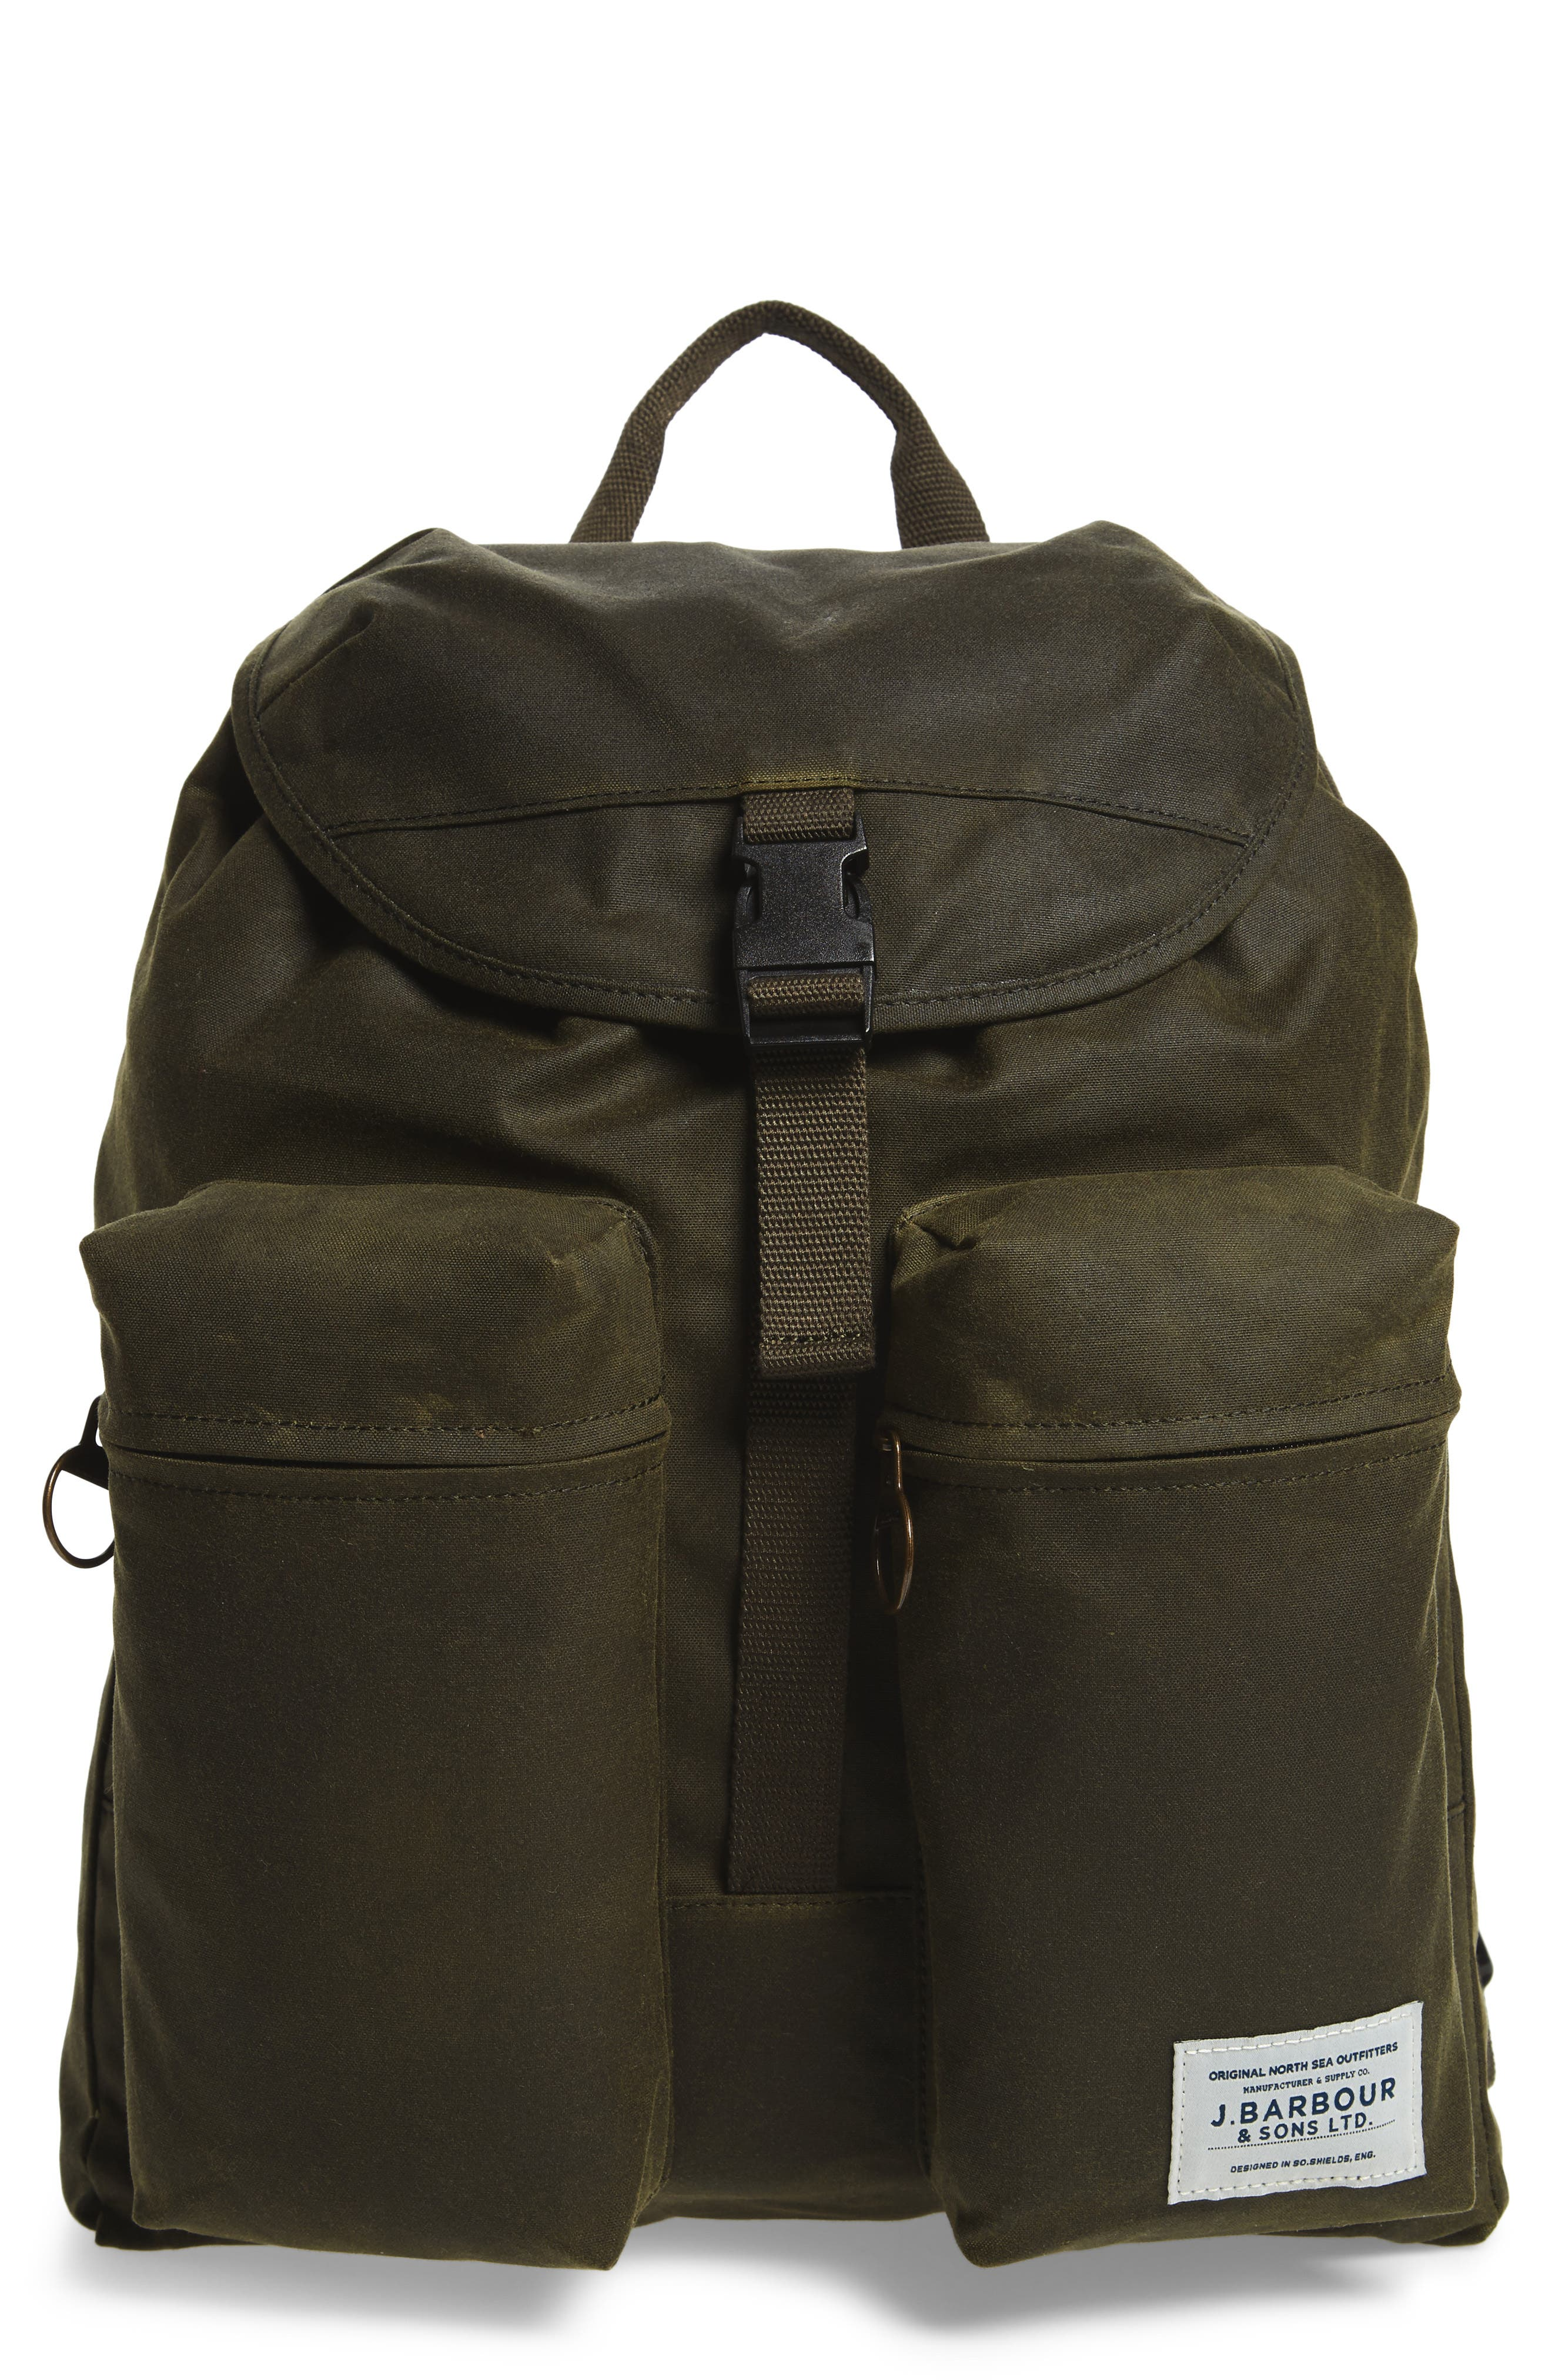 Archive Backpack,                             Main thumbnail 1, color,                             ARCHIVE OLIVE